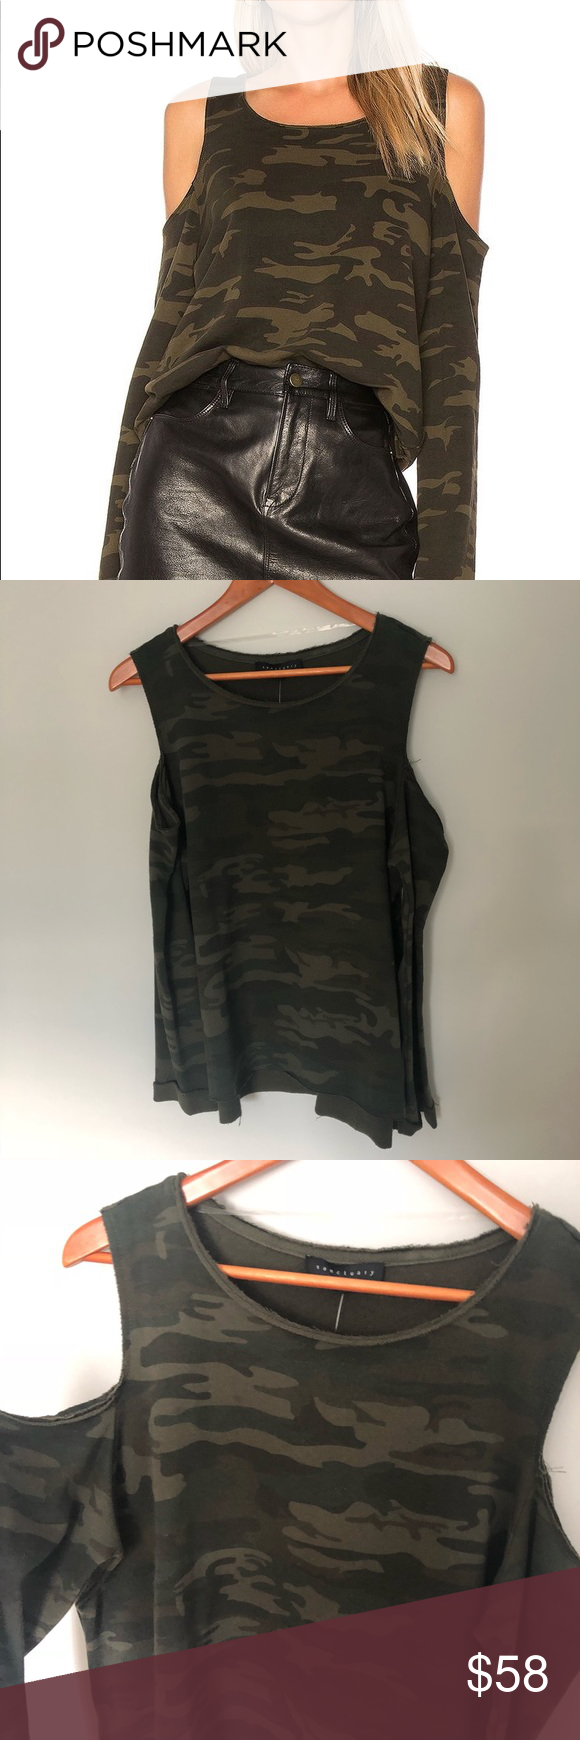 b92843809e8052 Sanctuary Green Camo Cold Shoulder Sweatshirt Sanctuary Green Camo Cold  Shoulder Sweatshirt. New with tags! On trend. No trades.